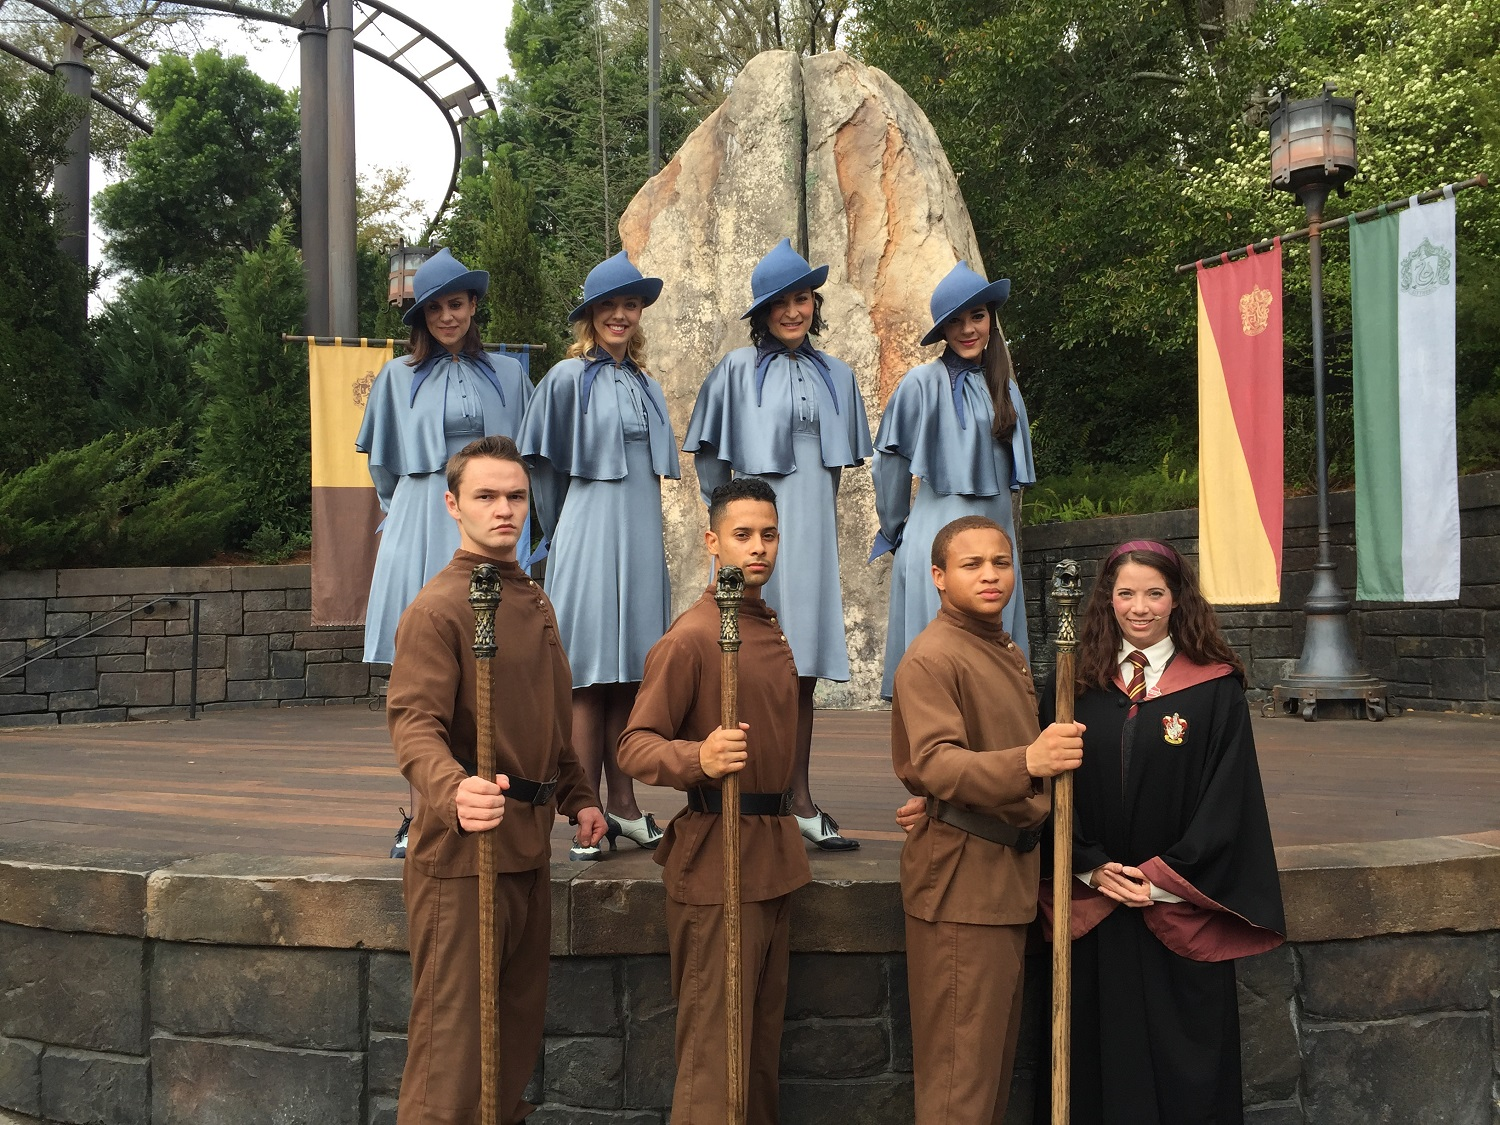 The Triwizard Spirit Rally is a live show featuring students from Hogwarts School of Witchcraft and Wizardry, Durmstrang Institute, and Beauxbatons Academy of Magic.